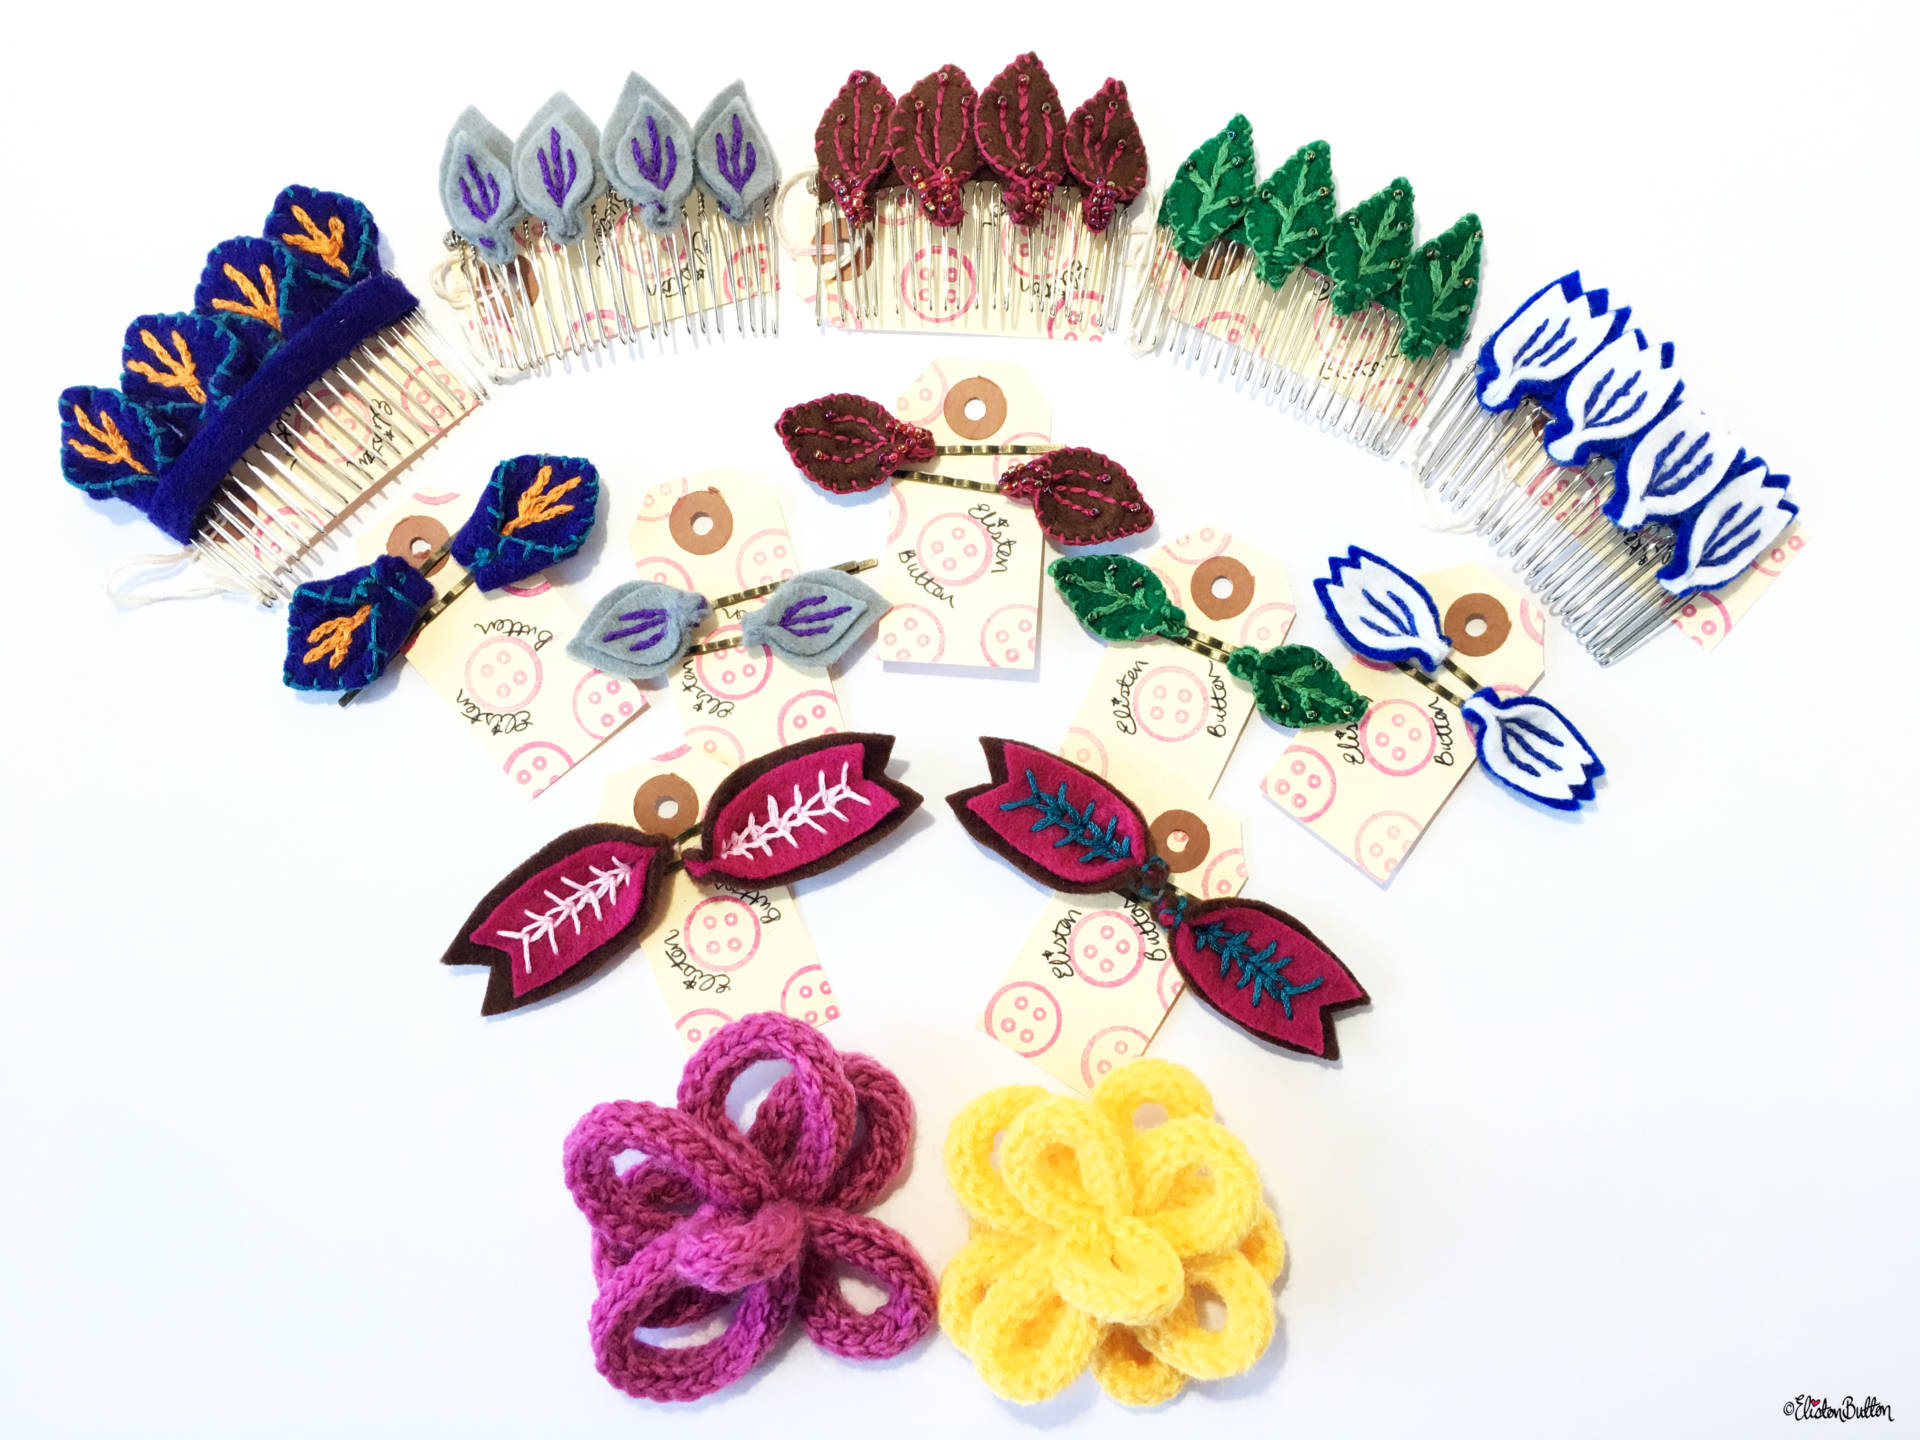 Embroidered Felt and French Knittted Hair Accessories by Eliston Button - Christmas Gift Guide, Last Postage Dates and a Present for You! at www.elistonbutton.com - Eliston Button - That Crafty Kid – Art, Design, Craft & Adventure.